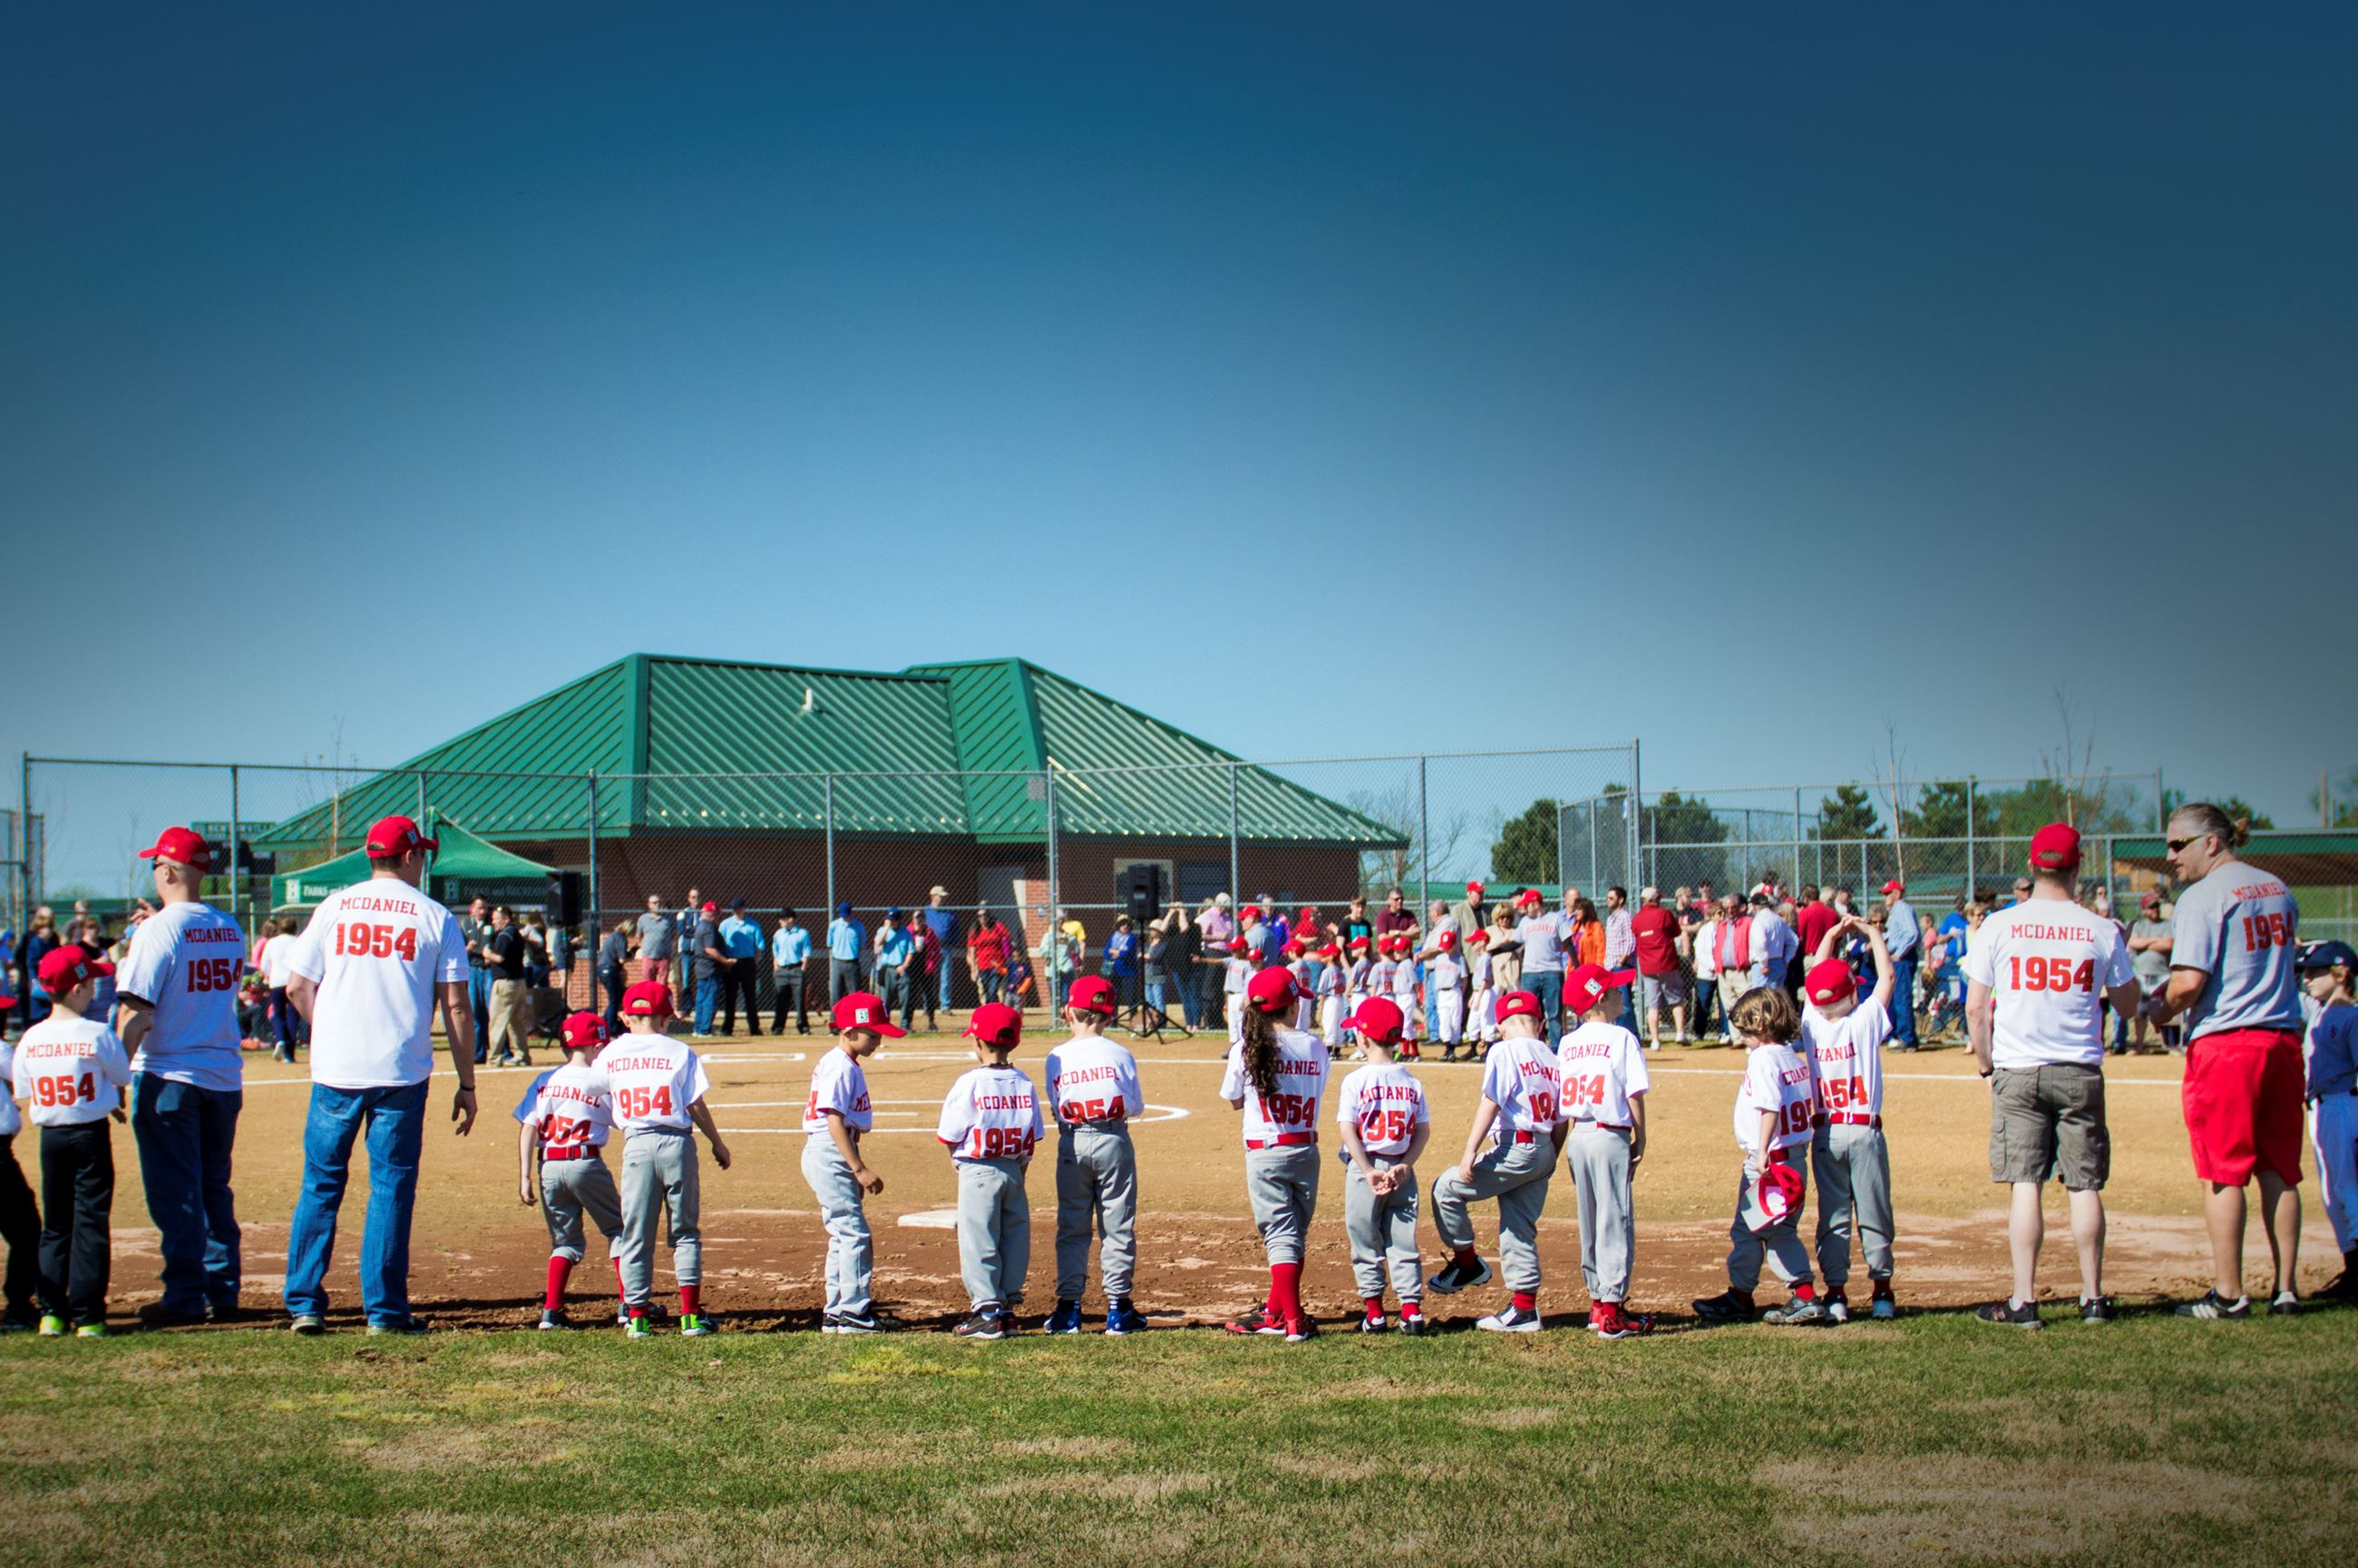 Merchants Baseball Park Little League players in baseball diamond